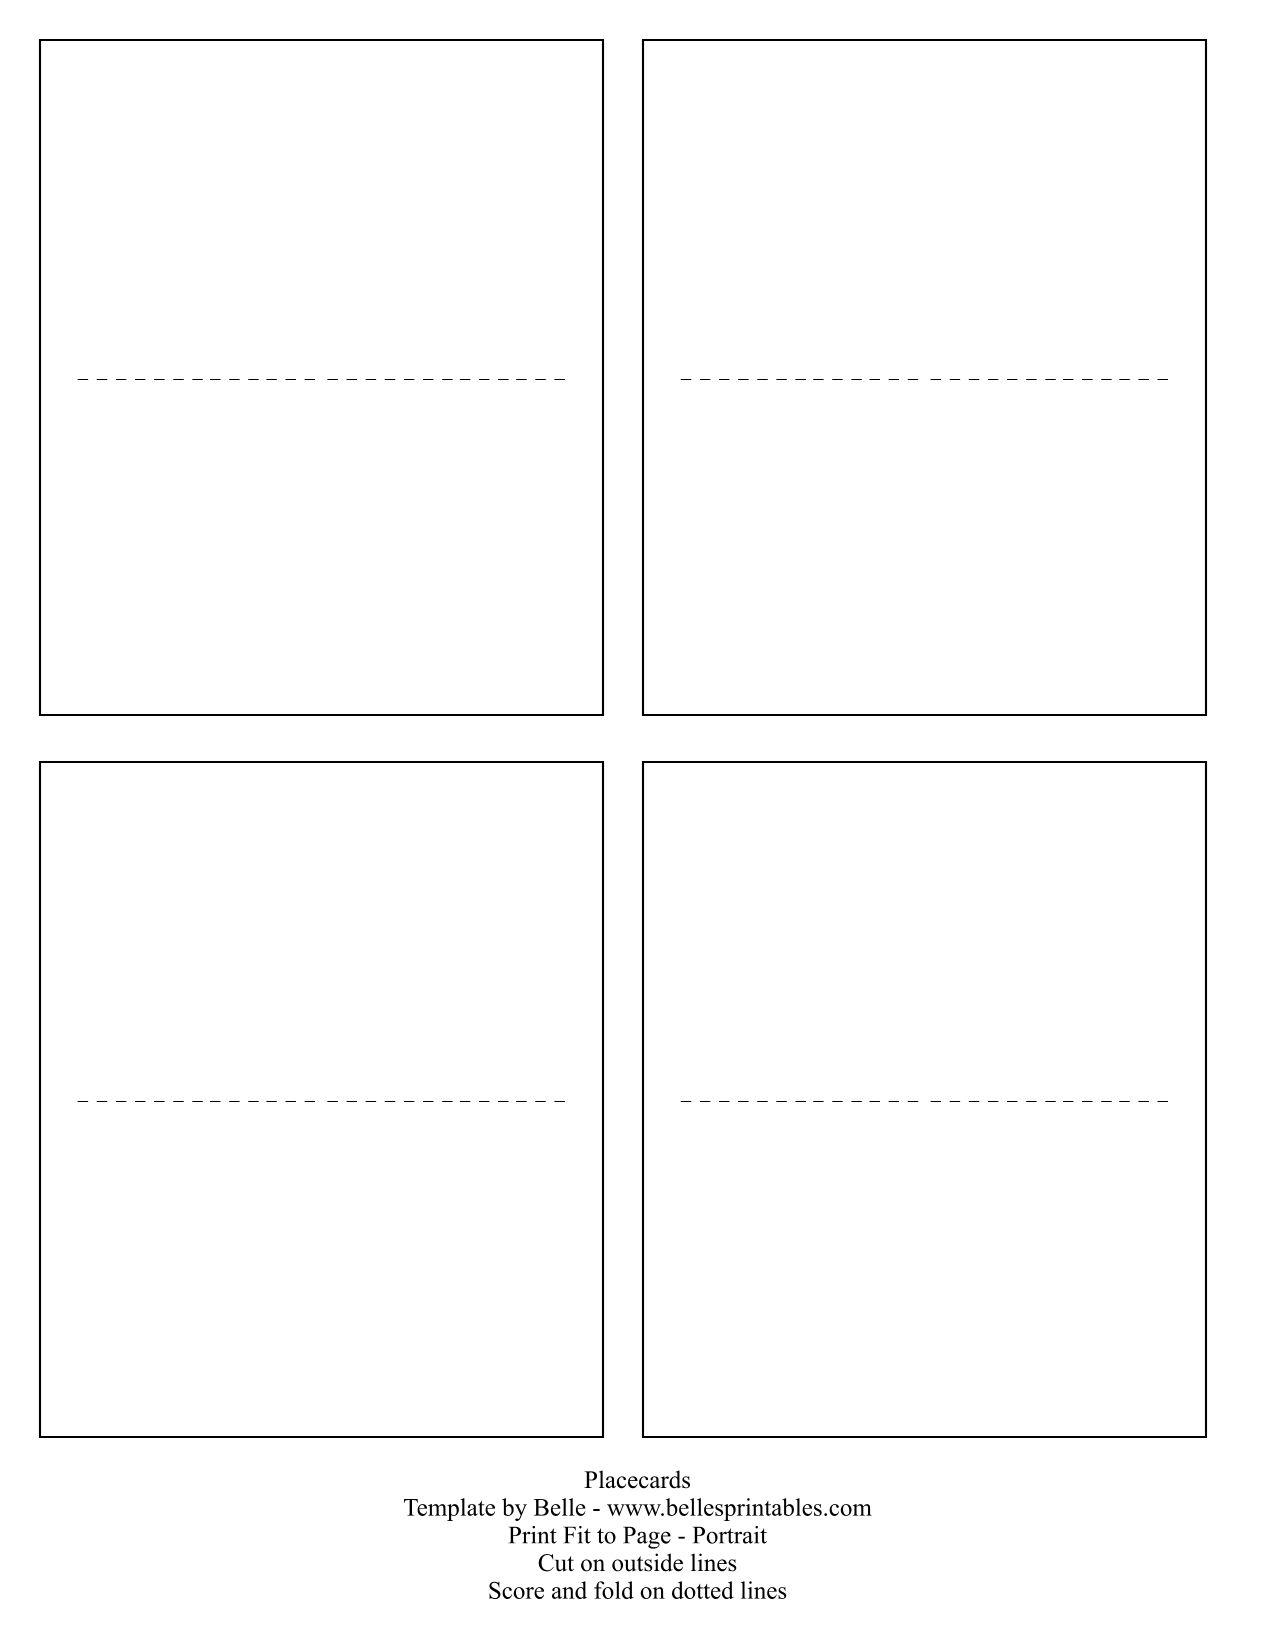 Card Template Placecards DIYdos And What Dos Templets - Template for place cards